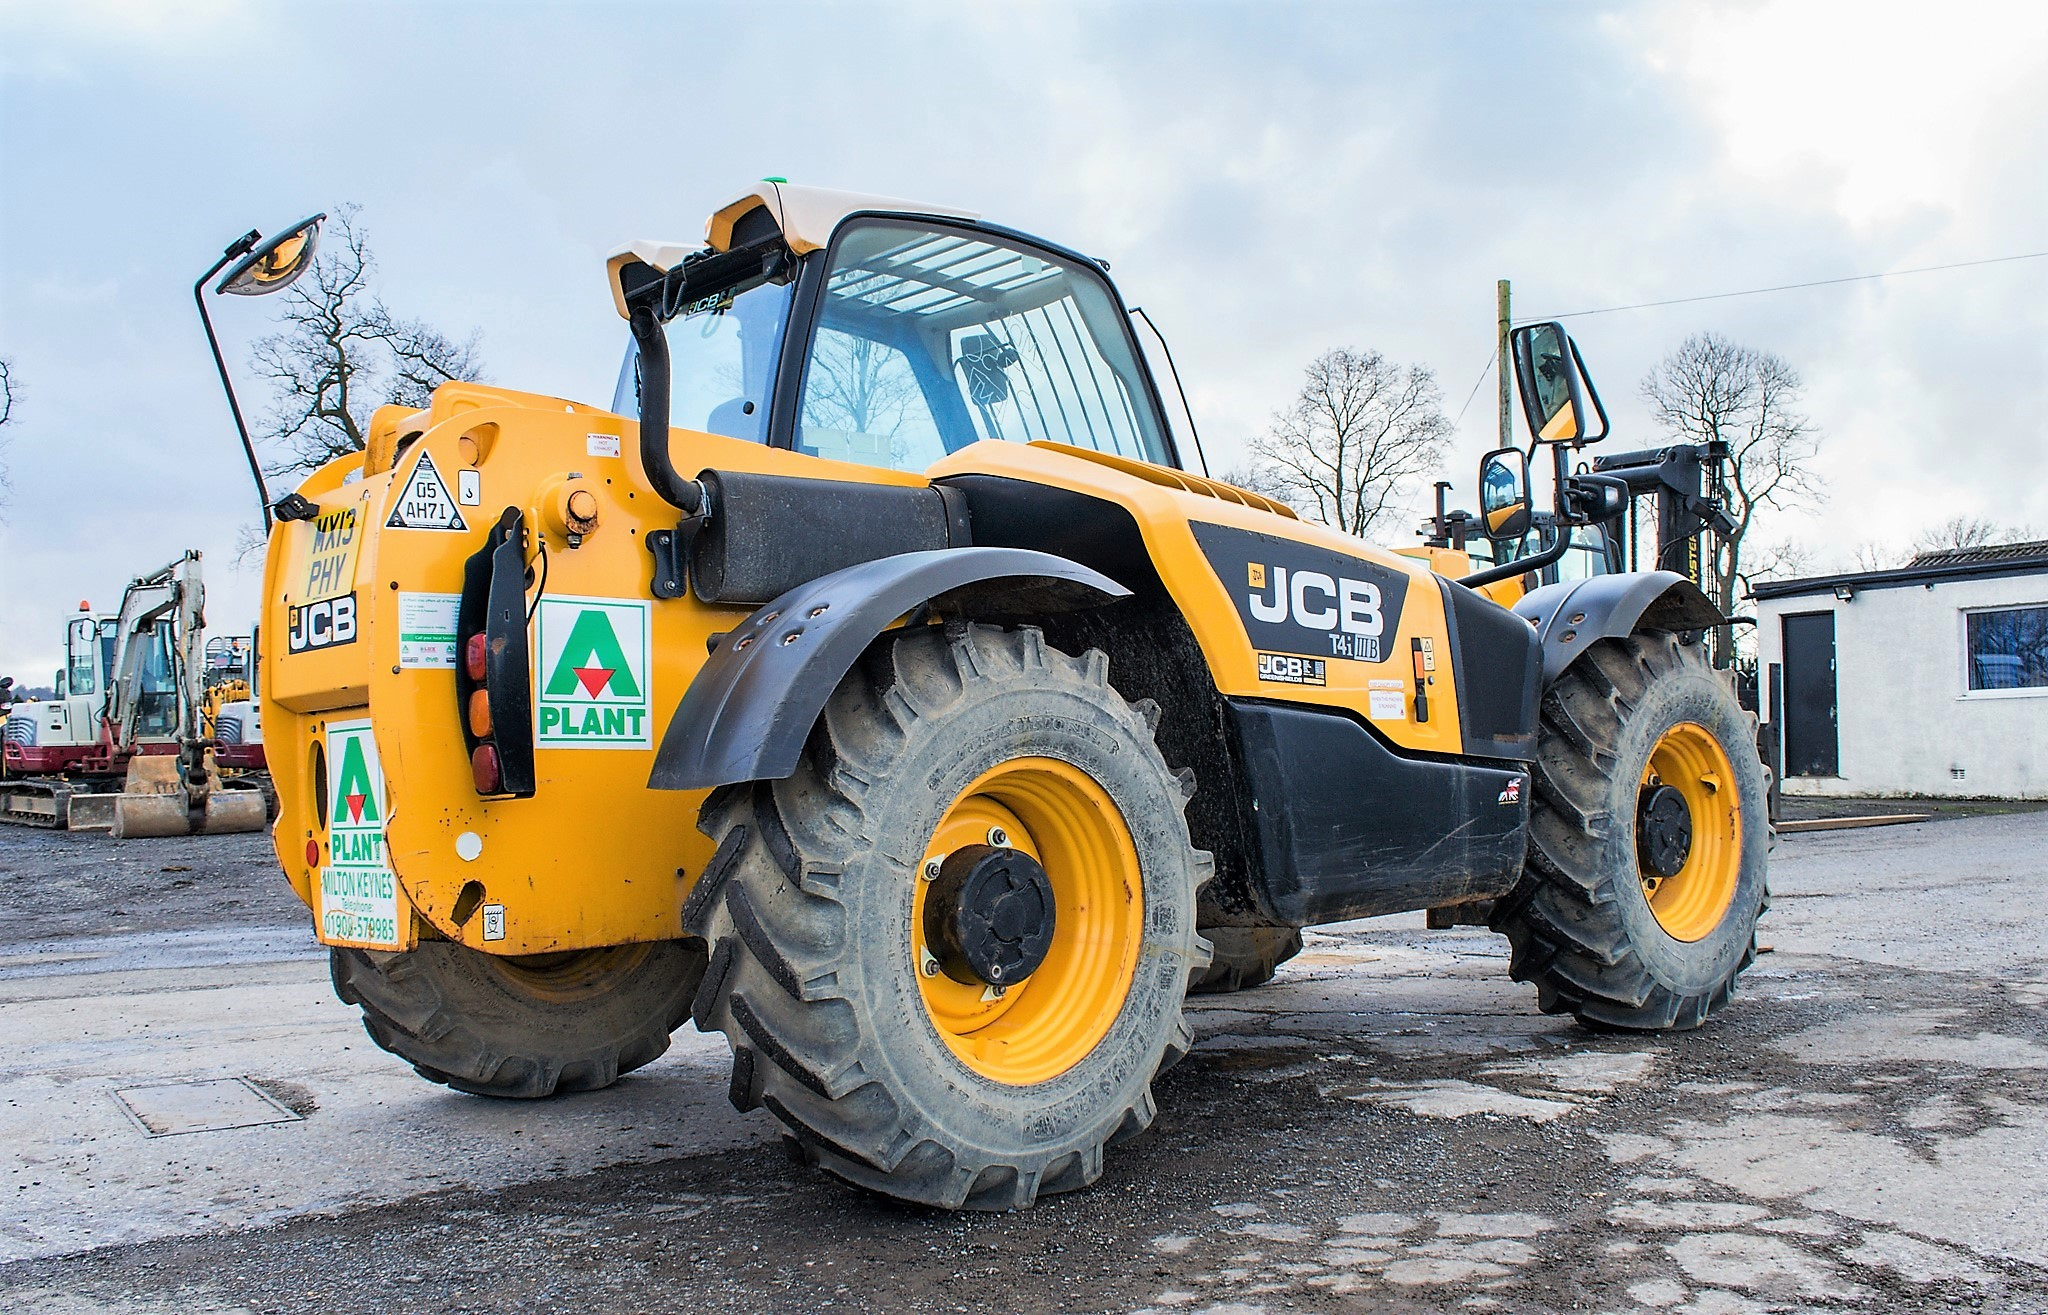 JCB 531-70 7 metre telescopic handler Year: 2013 S/N: 2176575 Reg No: MX13 PHY Recorded Hours: - Image 4 of 19